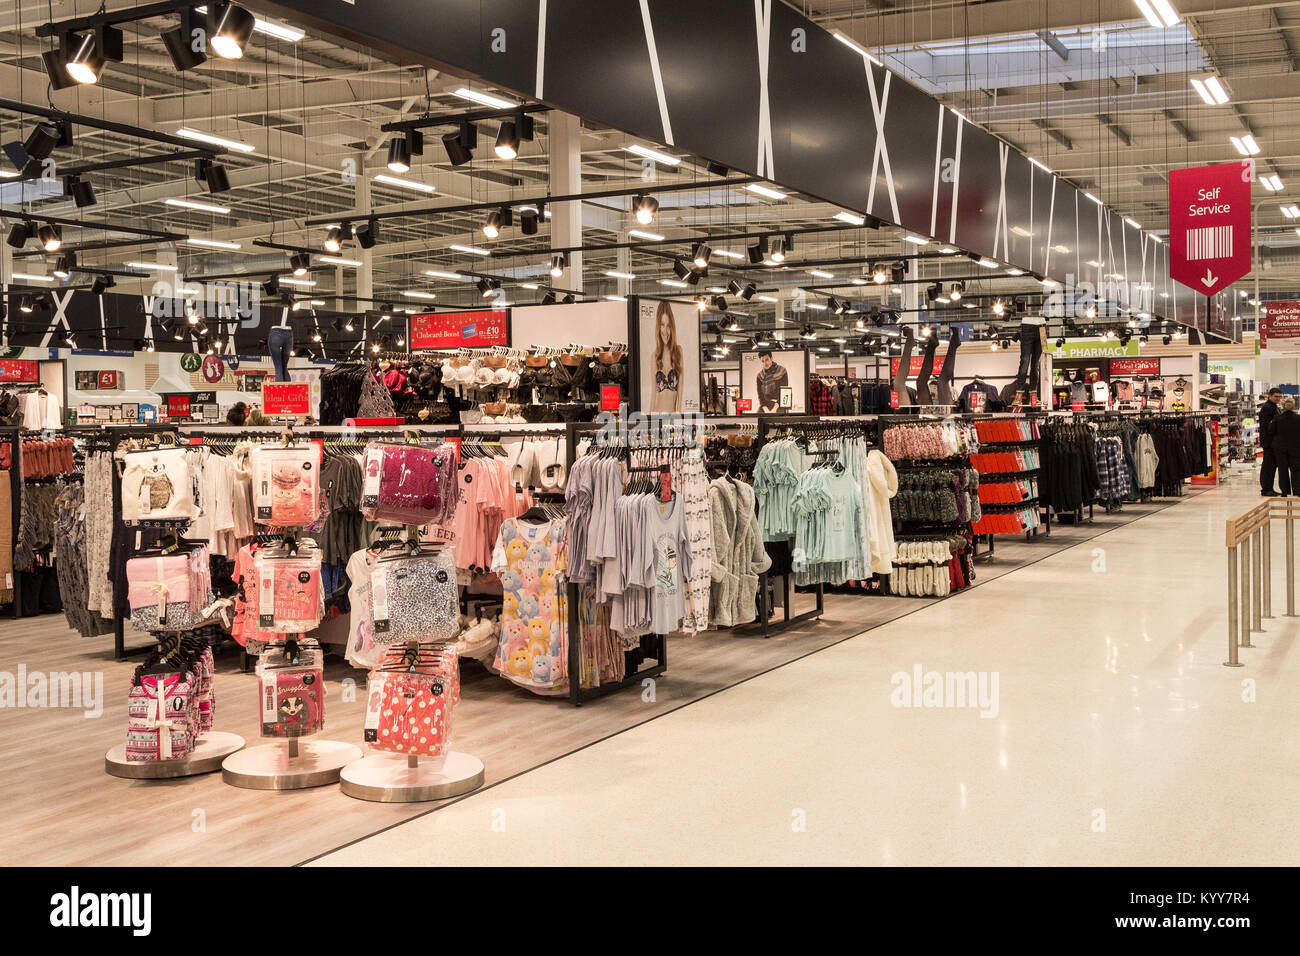 46ddf554ce5f Tesco Clothing Stock Photos & Tesco Clothing Stock Images - Alamy